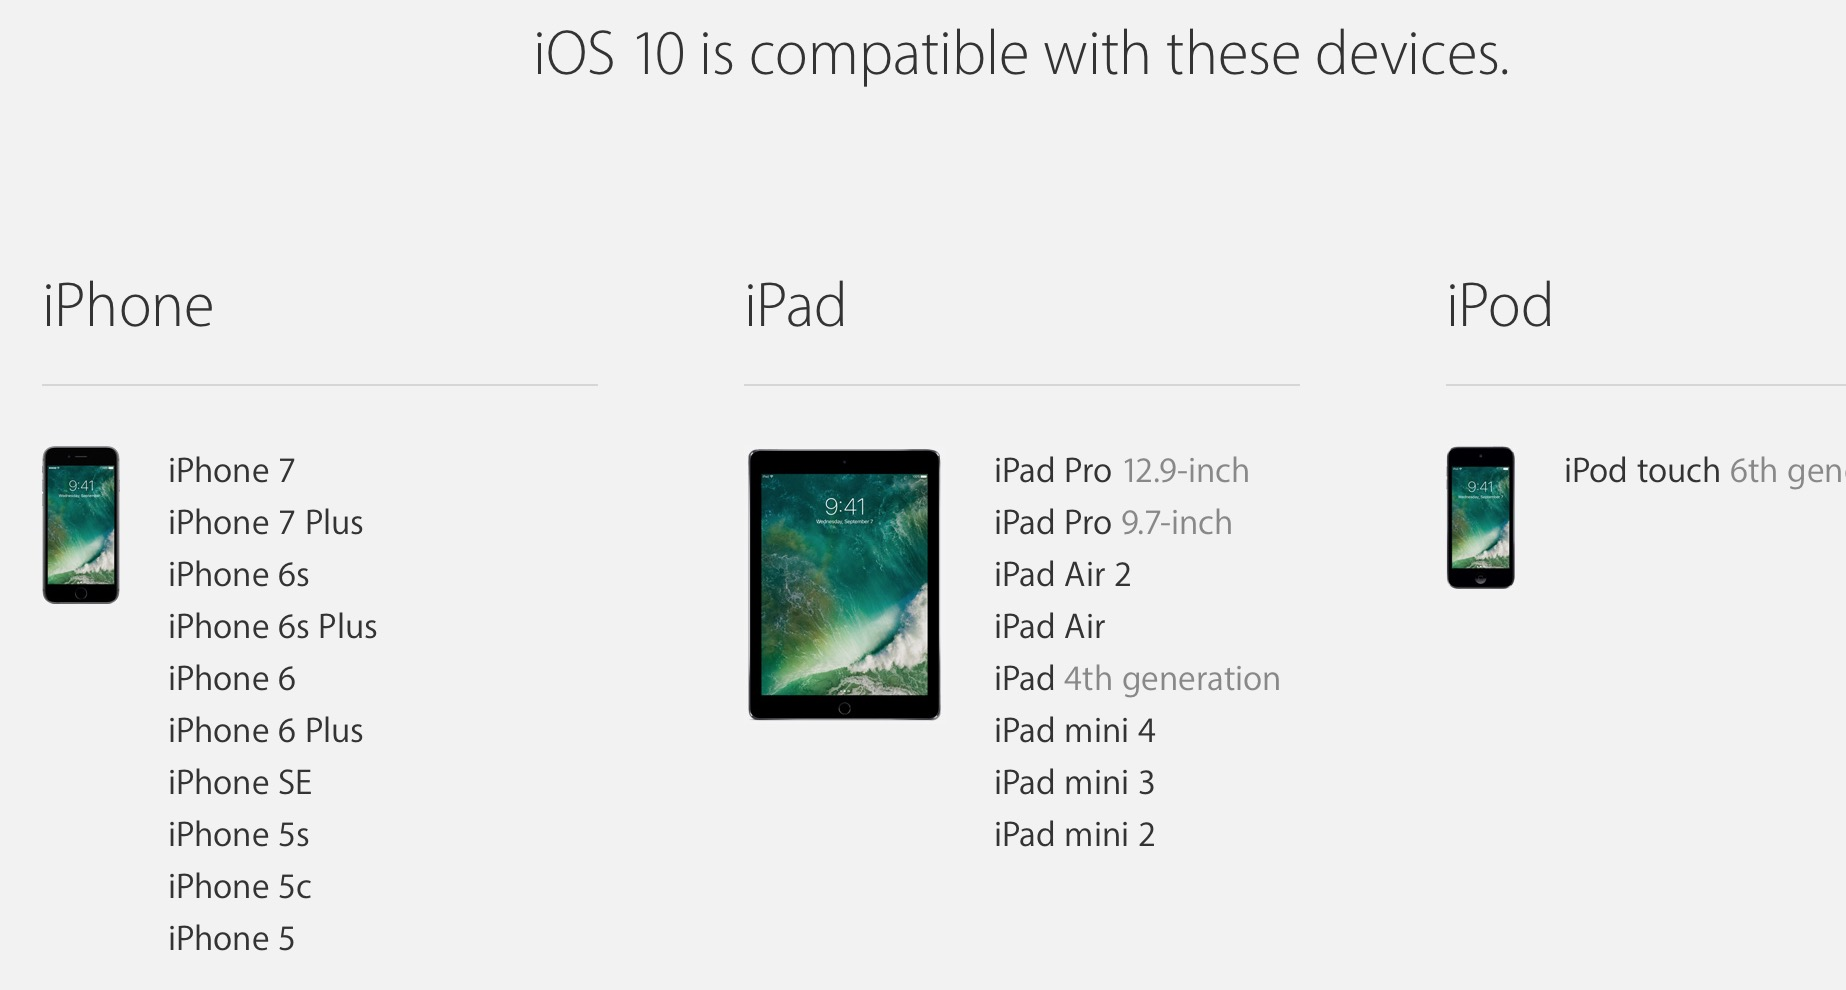 The official iOS 10 supported device list